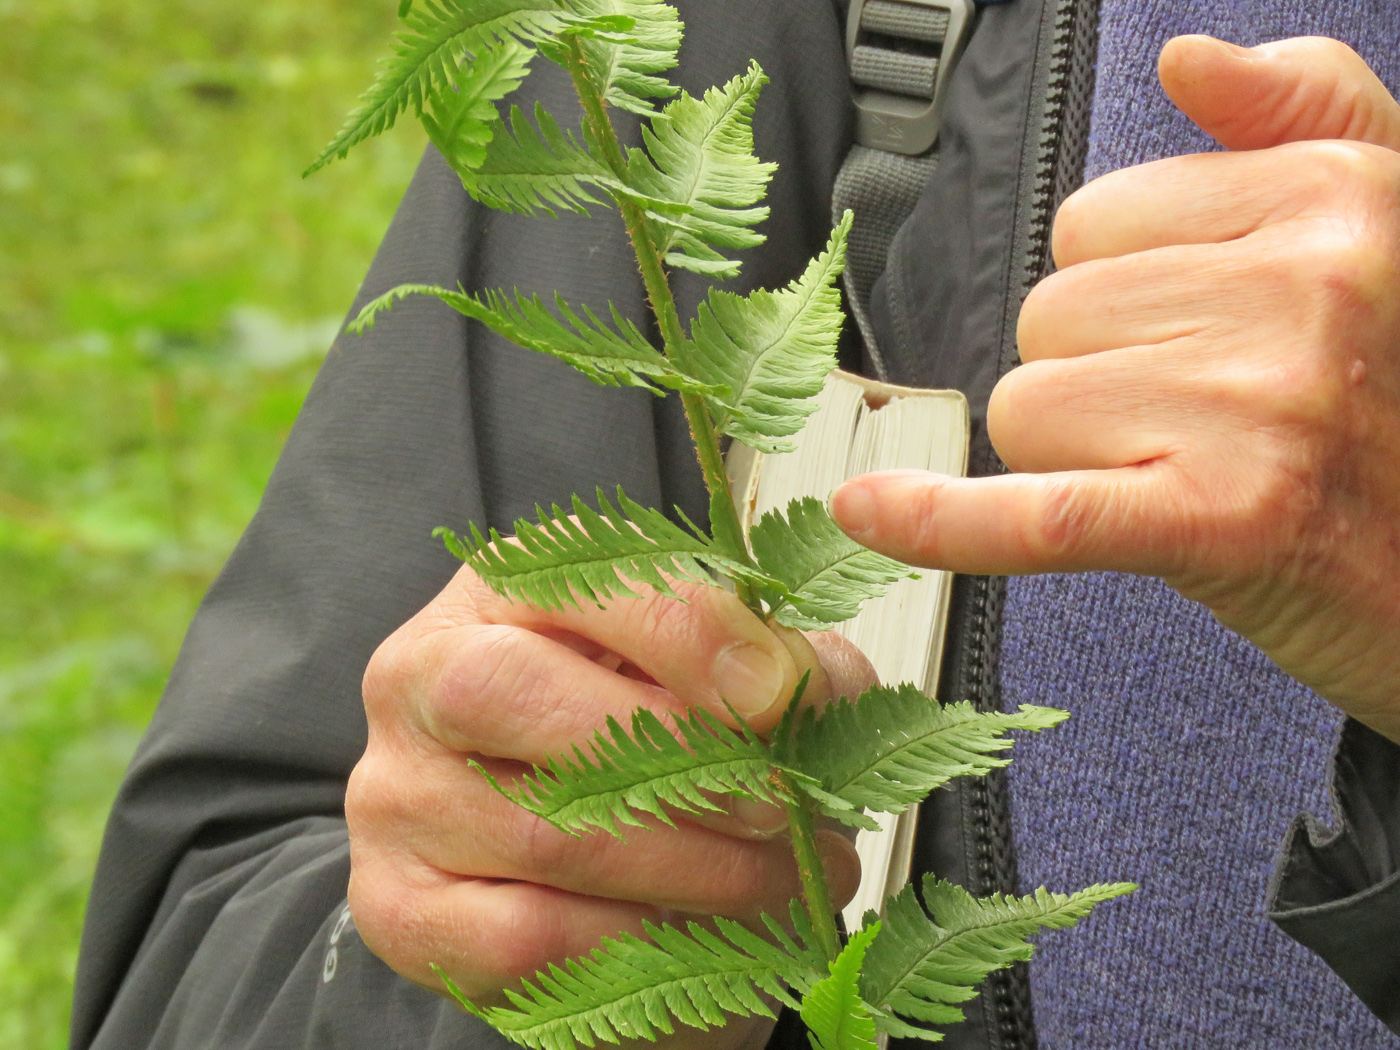 Jackie tells us about ferns